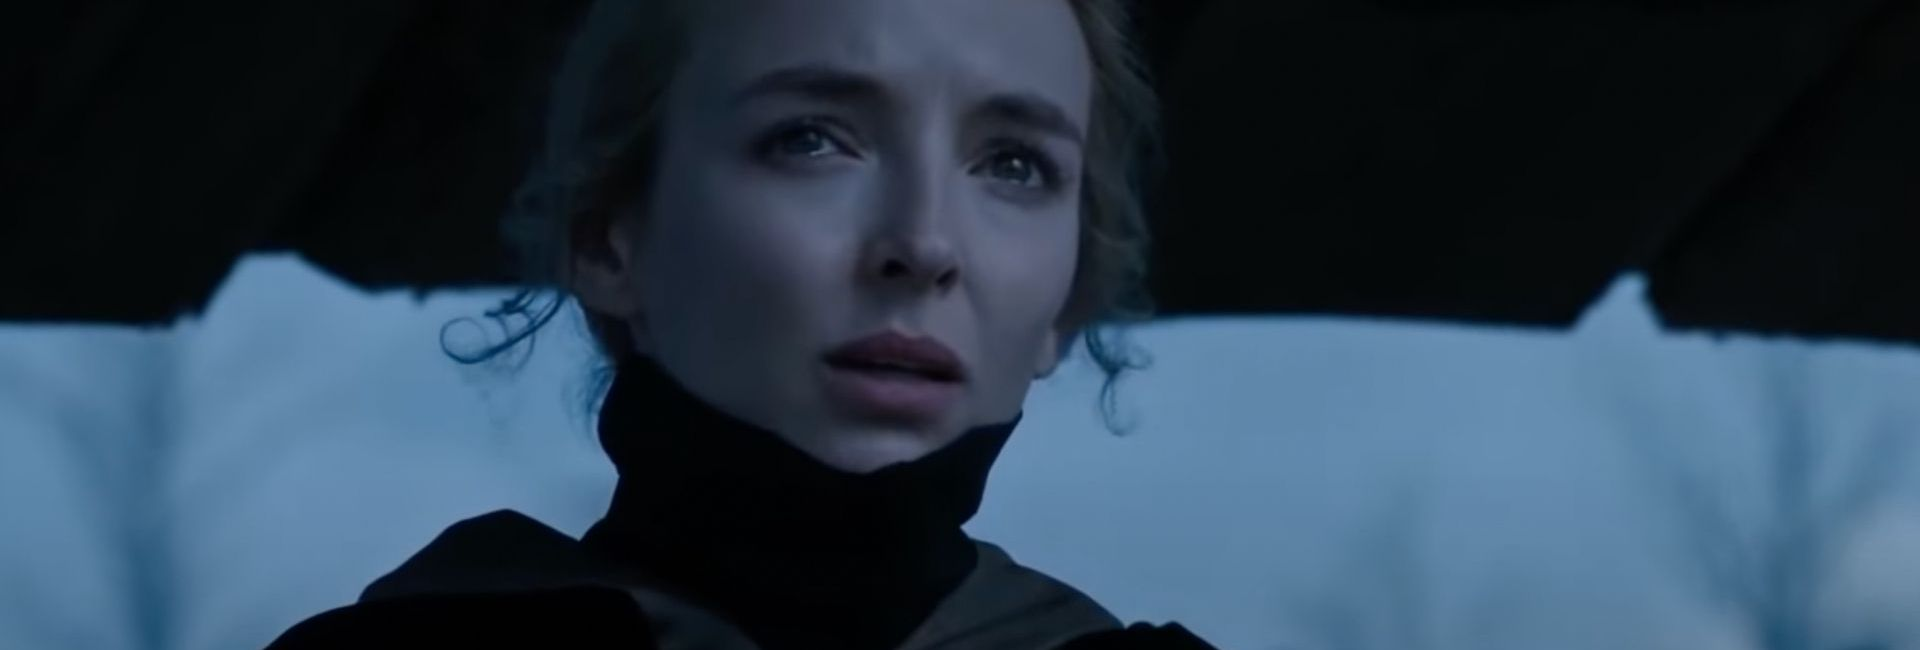 jodie comer – the last duel